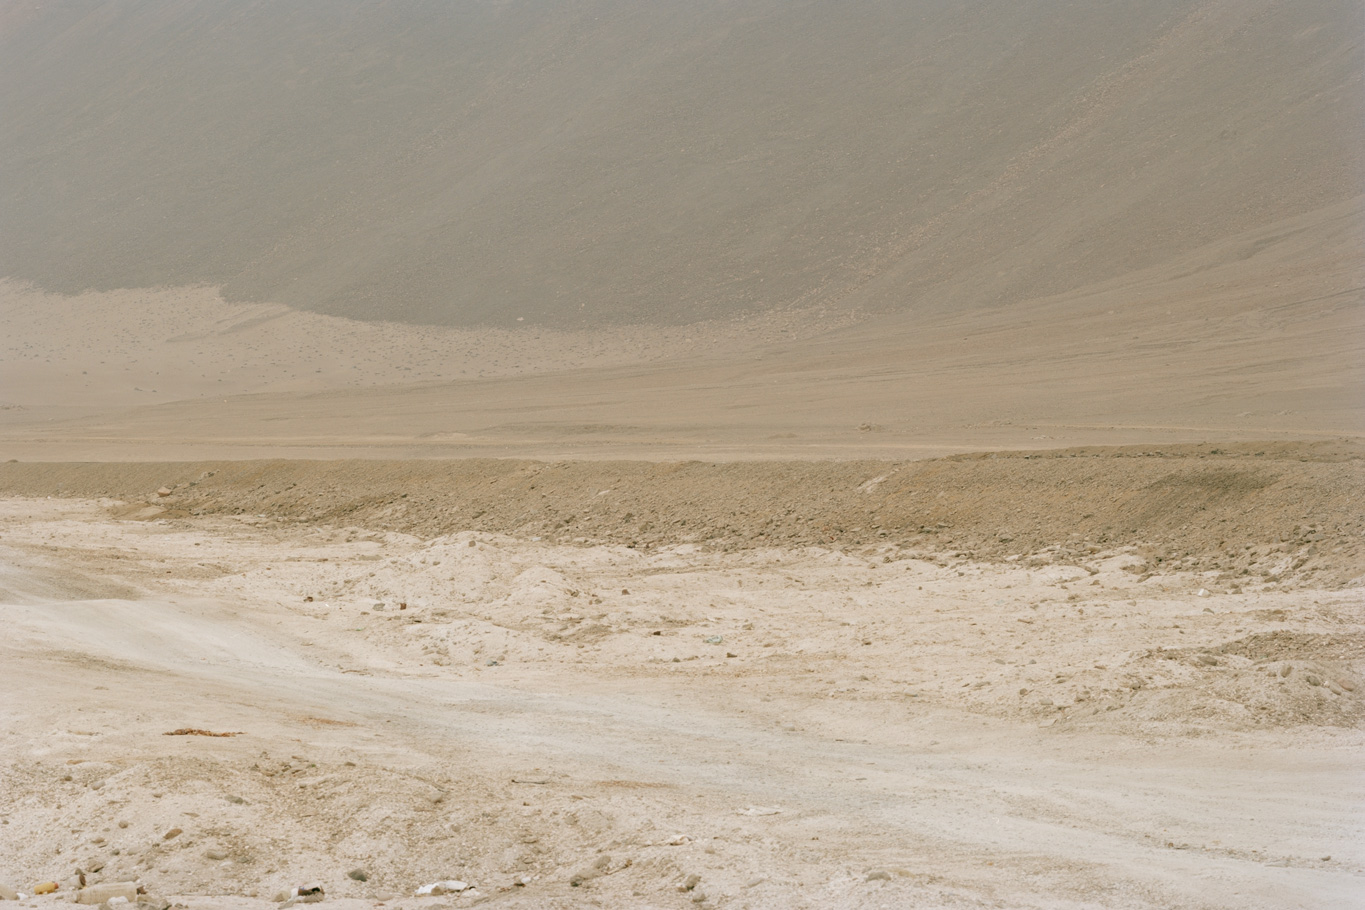 From the series 'Sulphuric Acid Route' (from 'Copper Geographies'), Atacama Desert, 2012  © Ignacio Acosta